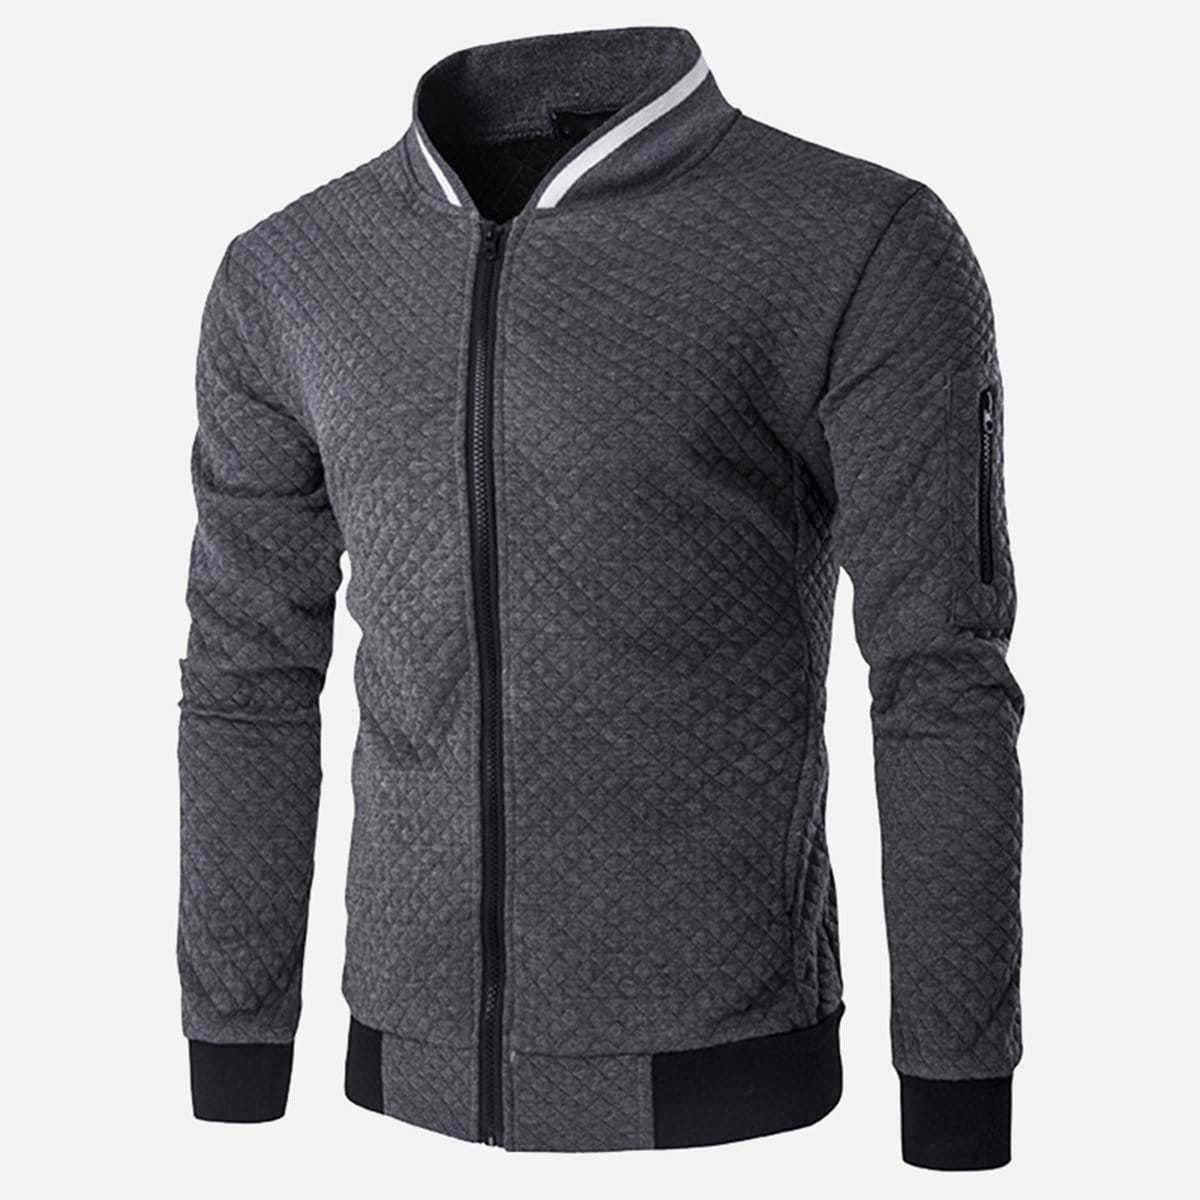 Guys Zipper Fly Stand Collar Bomber Jacket in Grey by ROMWE on GOOFASH